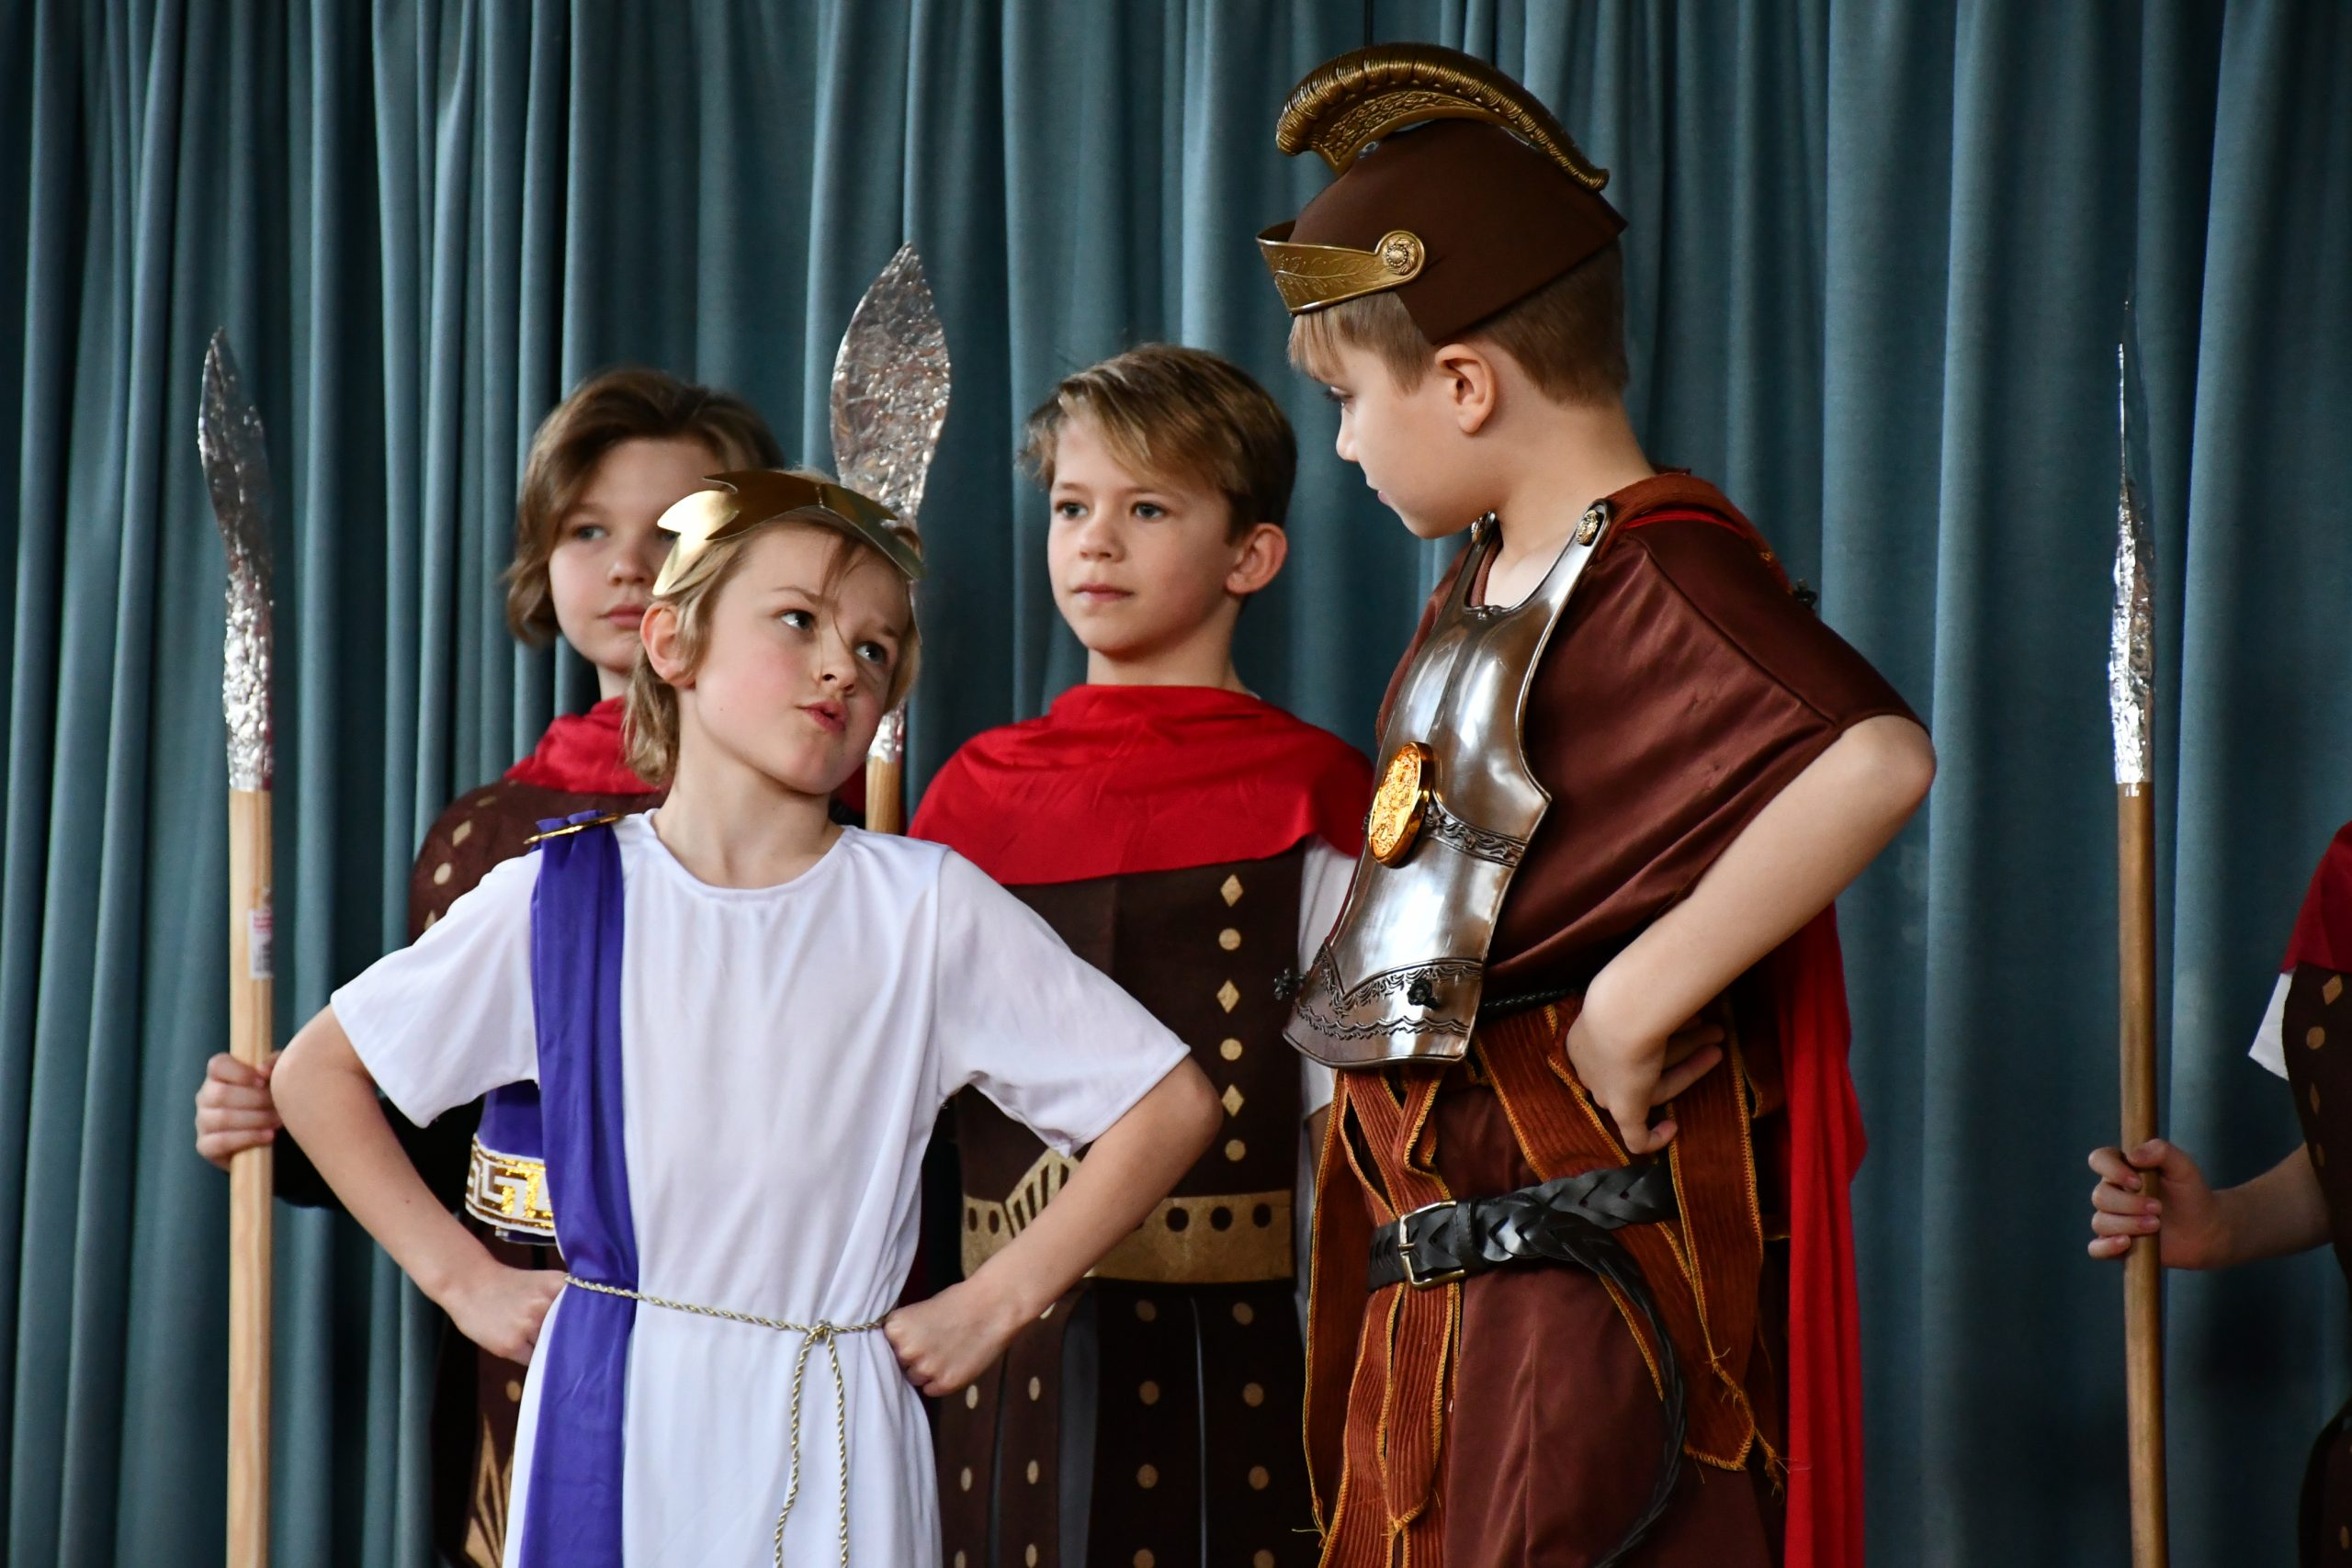 Roman play at St. John's Primary